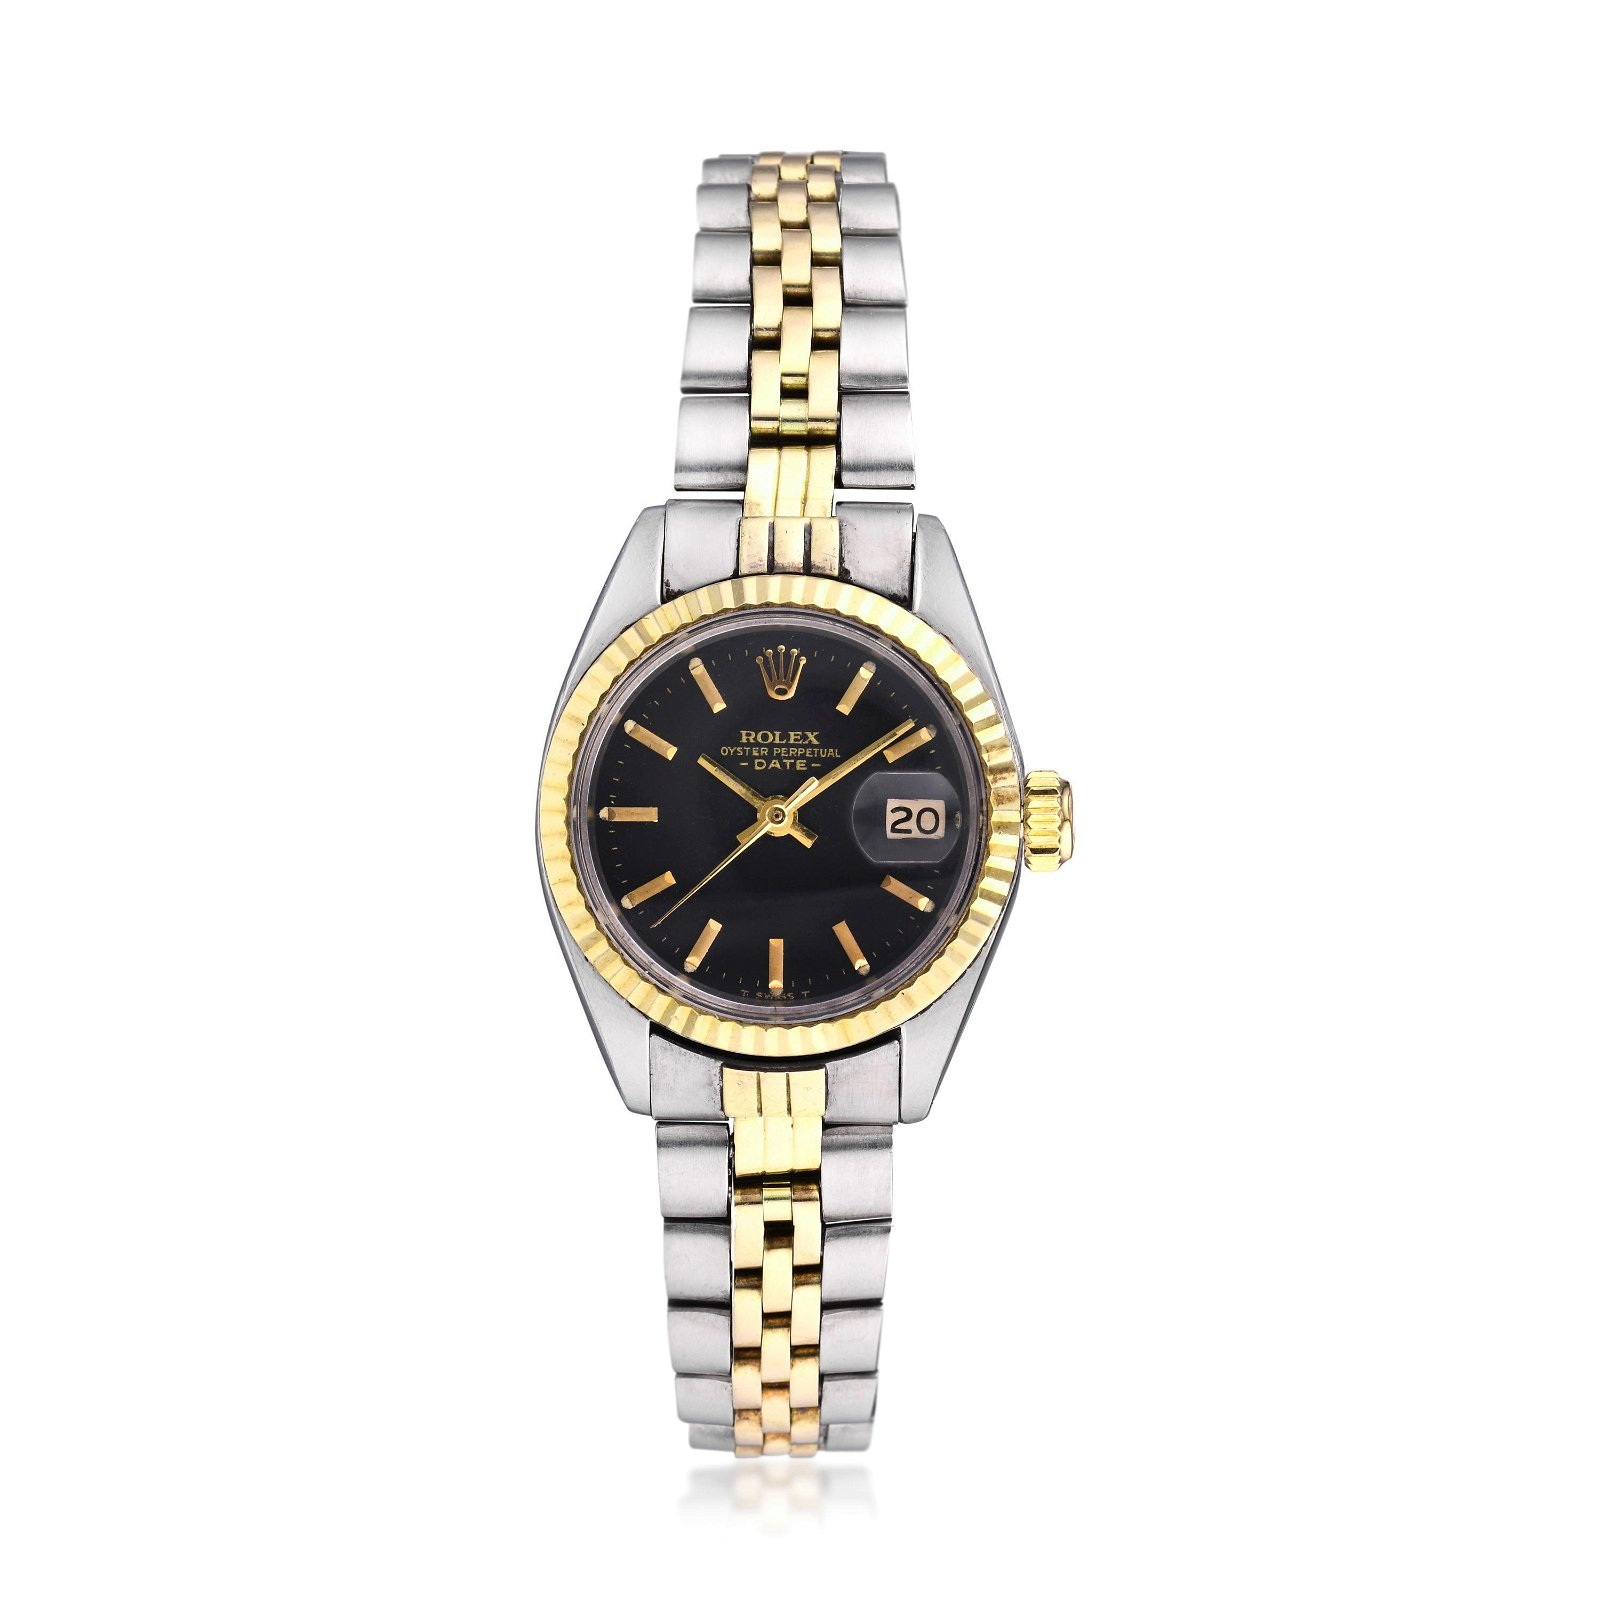 Rolex Oyster Perpetual Date Ref. 6917 in Steel and 14K